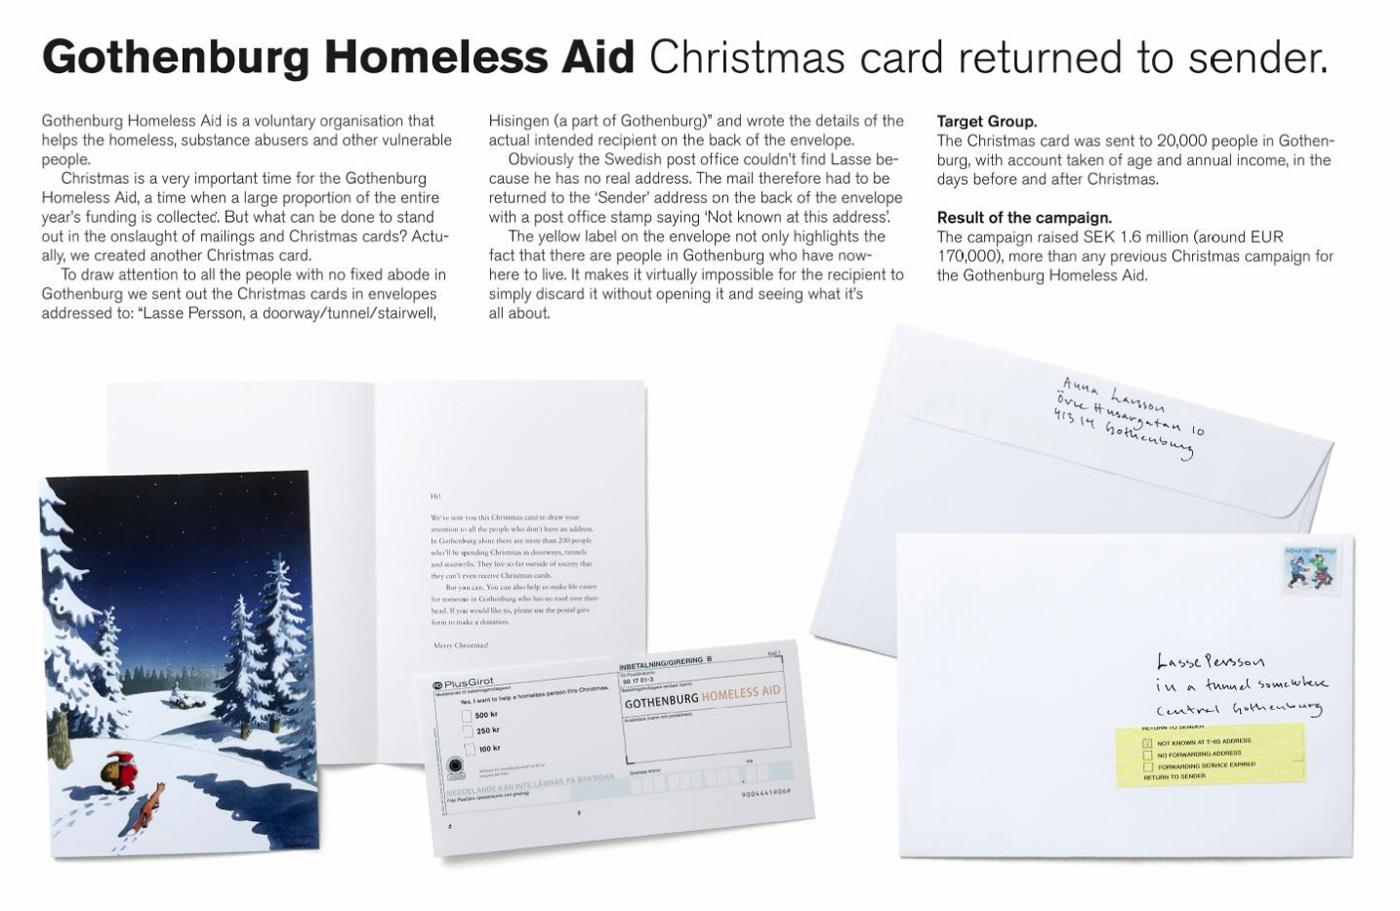 Gothenburg Homeless Aid Direct Ad -  Returned